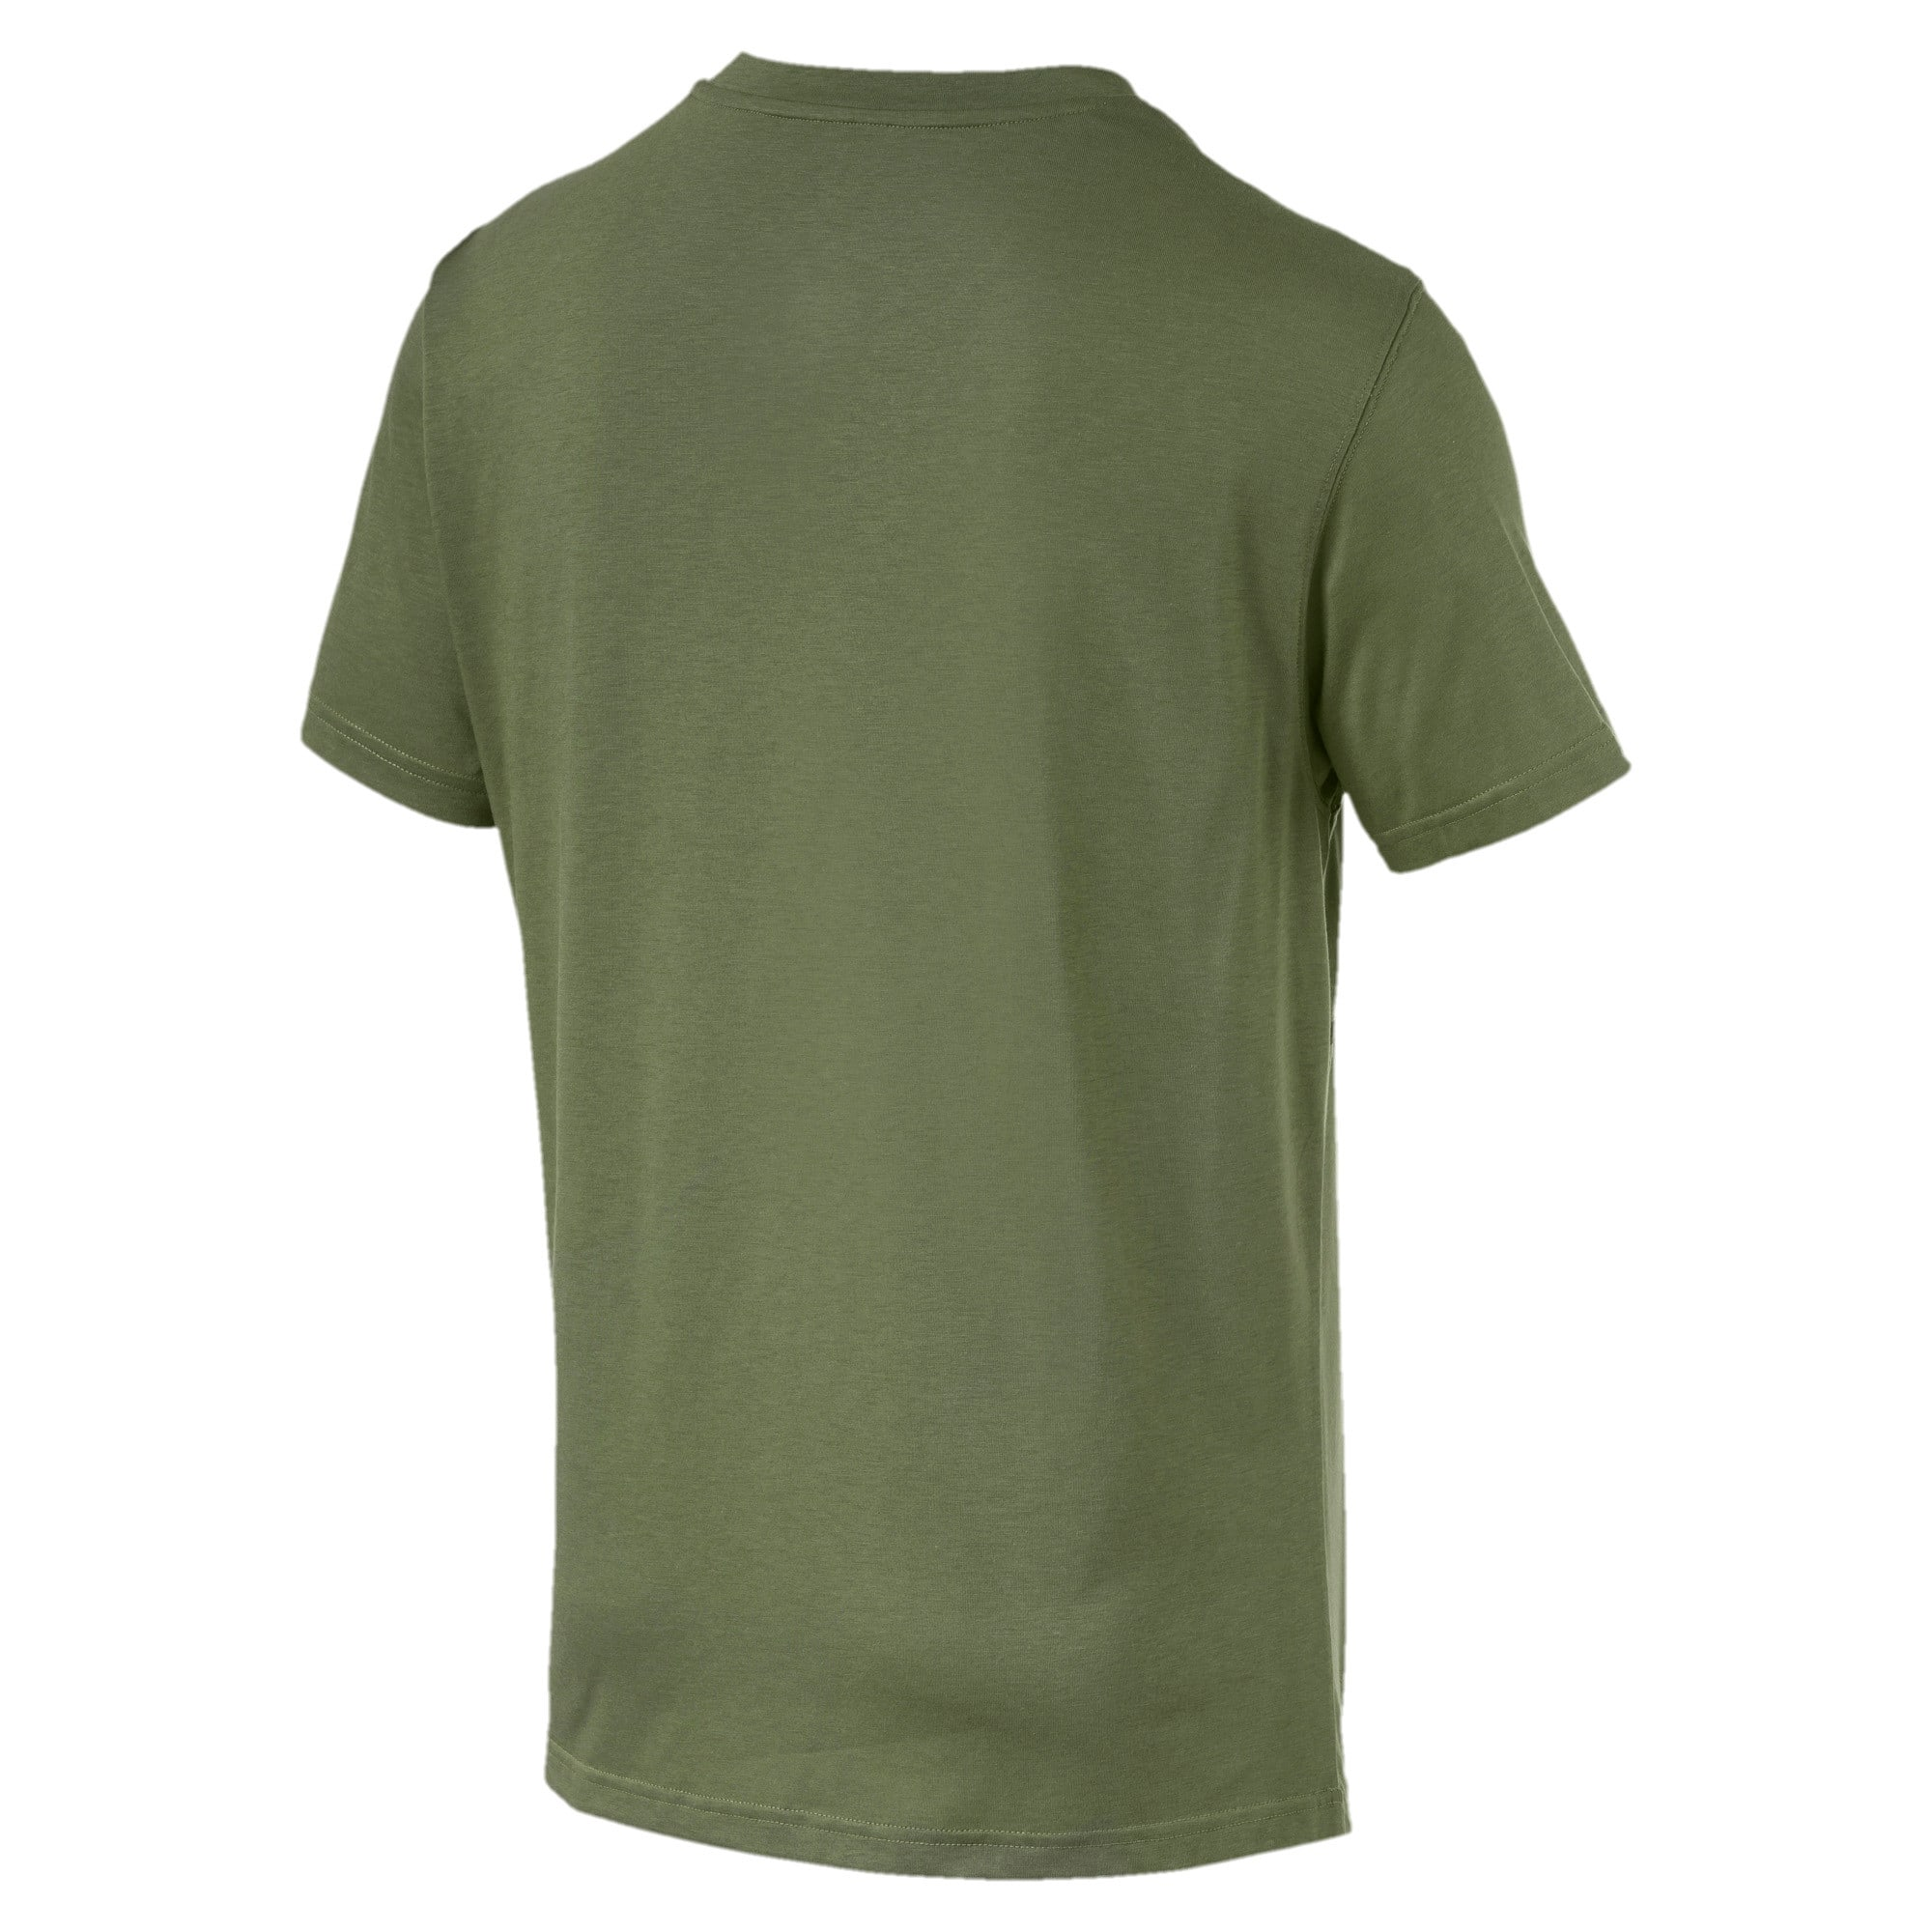 Thumbnail 2 of Energy Triblend Herren T-Shirt, Olivine, medium